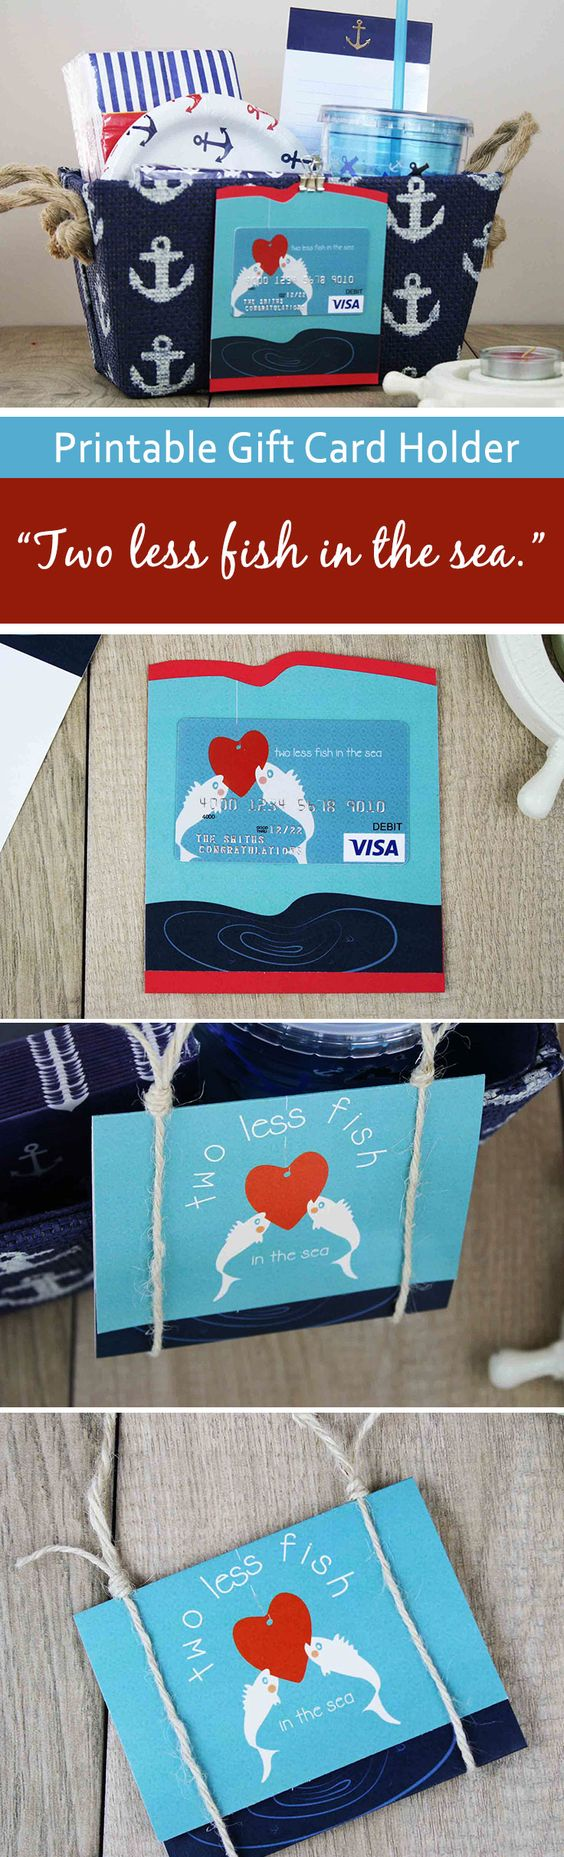 Wedding Shower Gift Card Holders : card holders wedding gifts gift cards love is bridal shower engagement ...